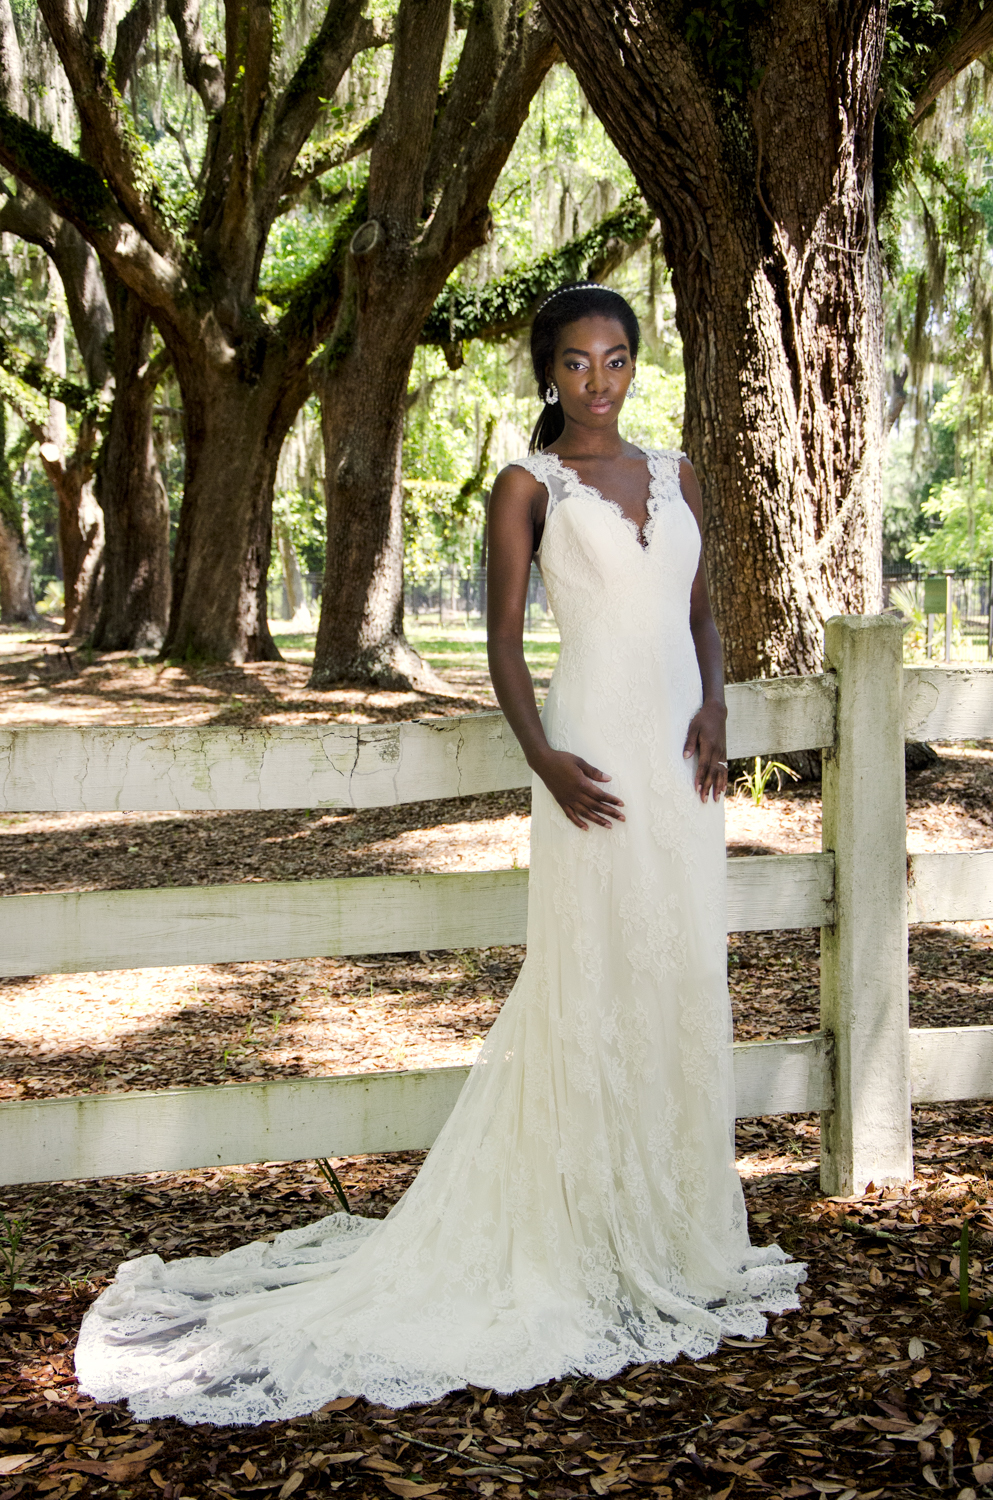 Model: Tenielle Adderley Makeup and Assistant: Ashley Lo Stylist and Hair: Brittany Stafford  Dresses From: Ivory and Beau Location: Wormsloe Historic Site - Savannah, GA